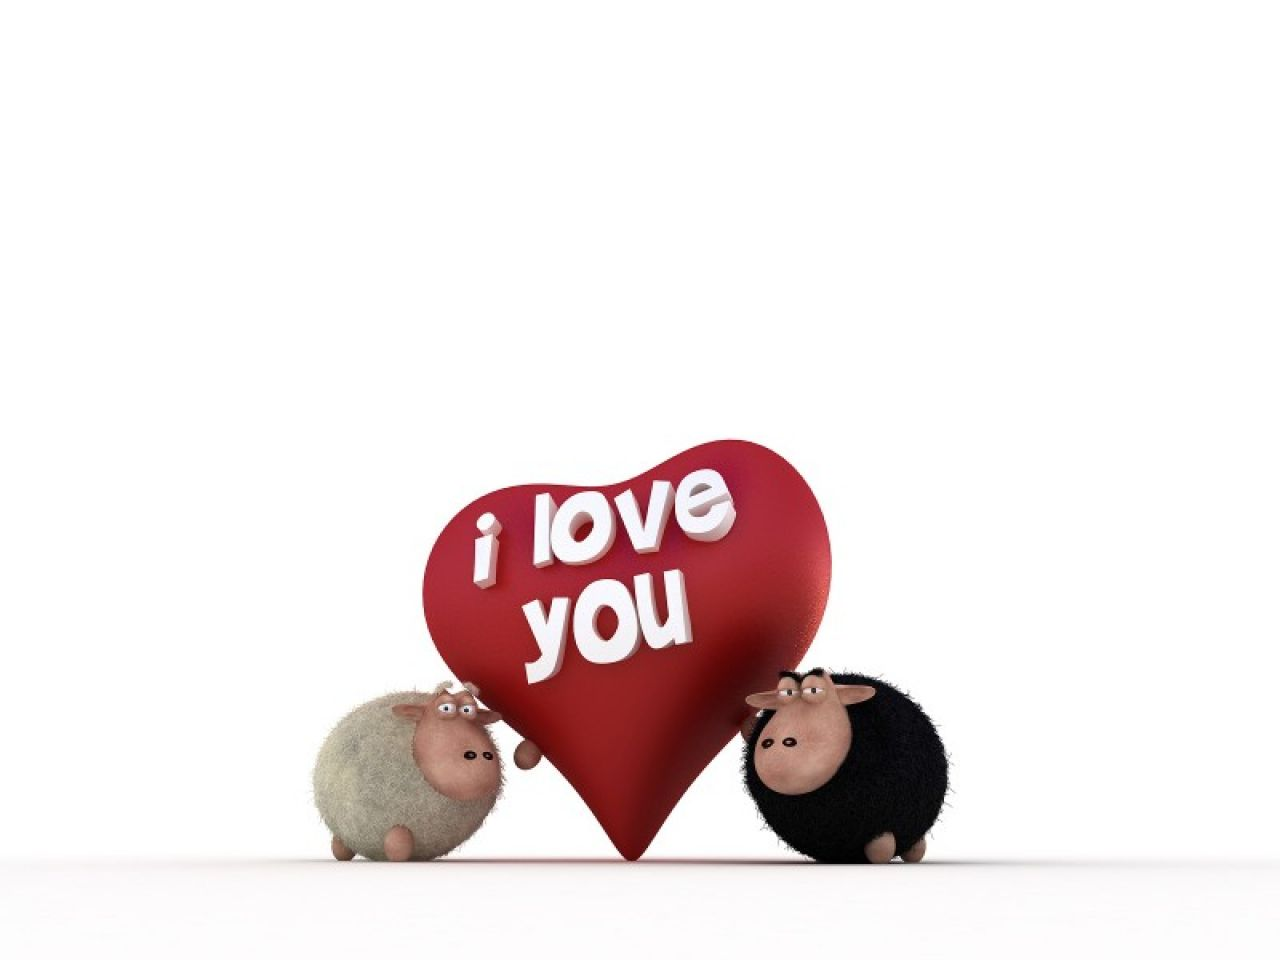 I Love you en San Valentín